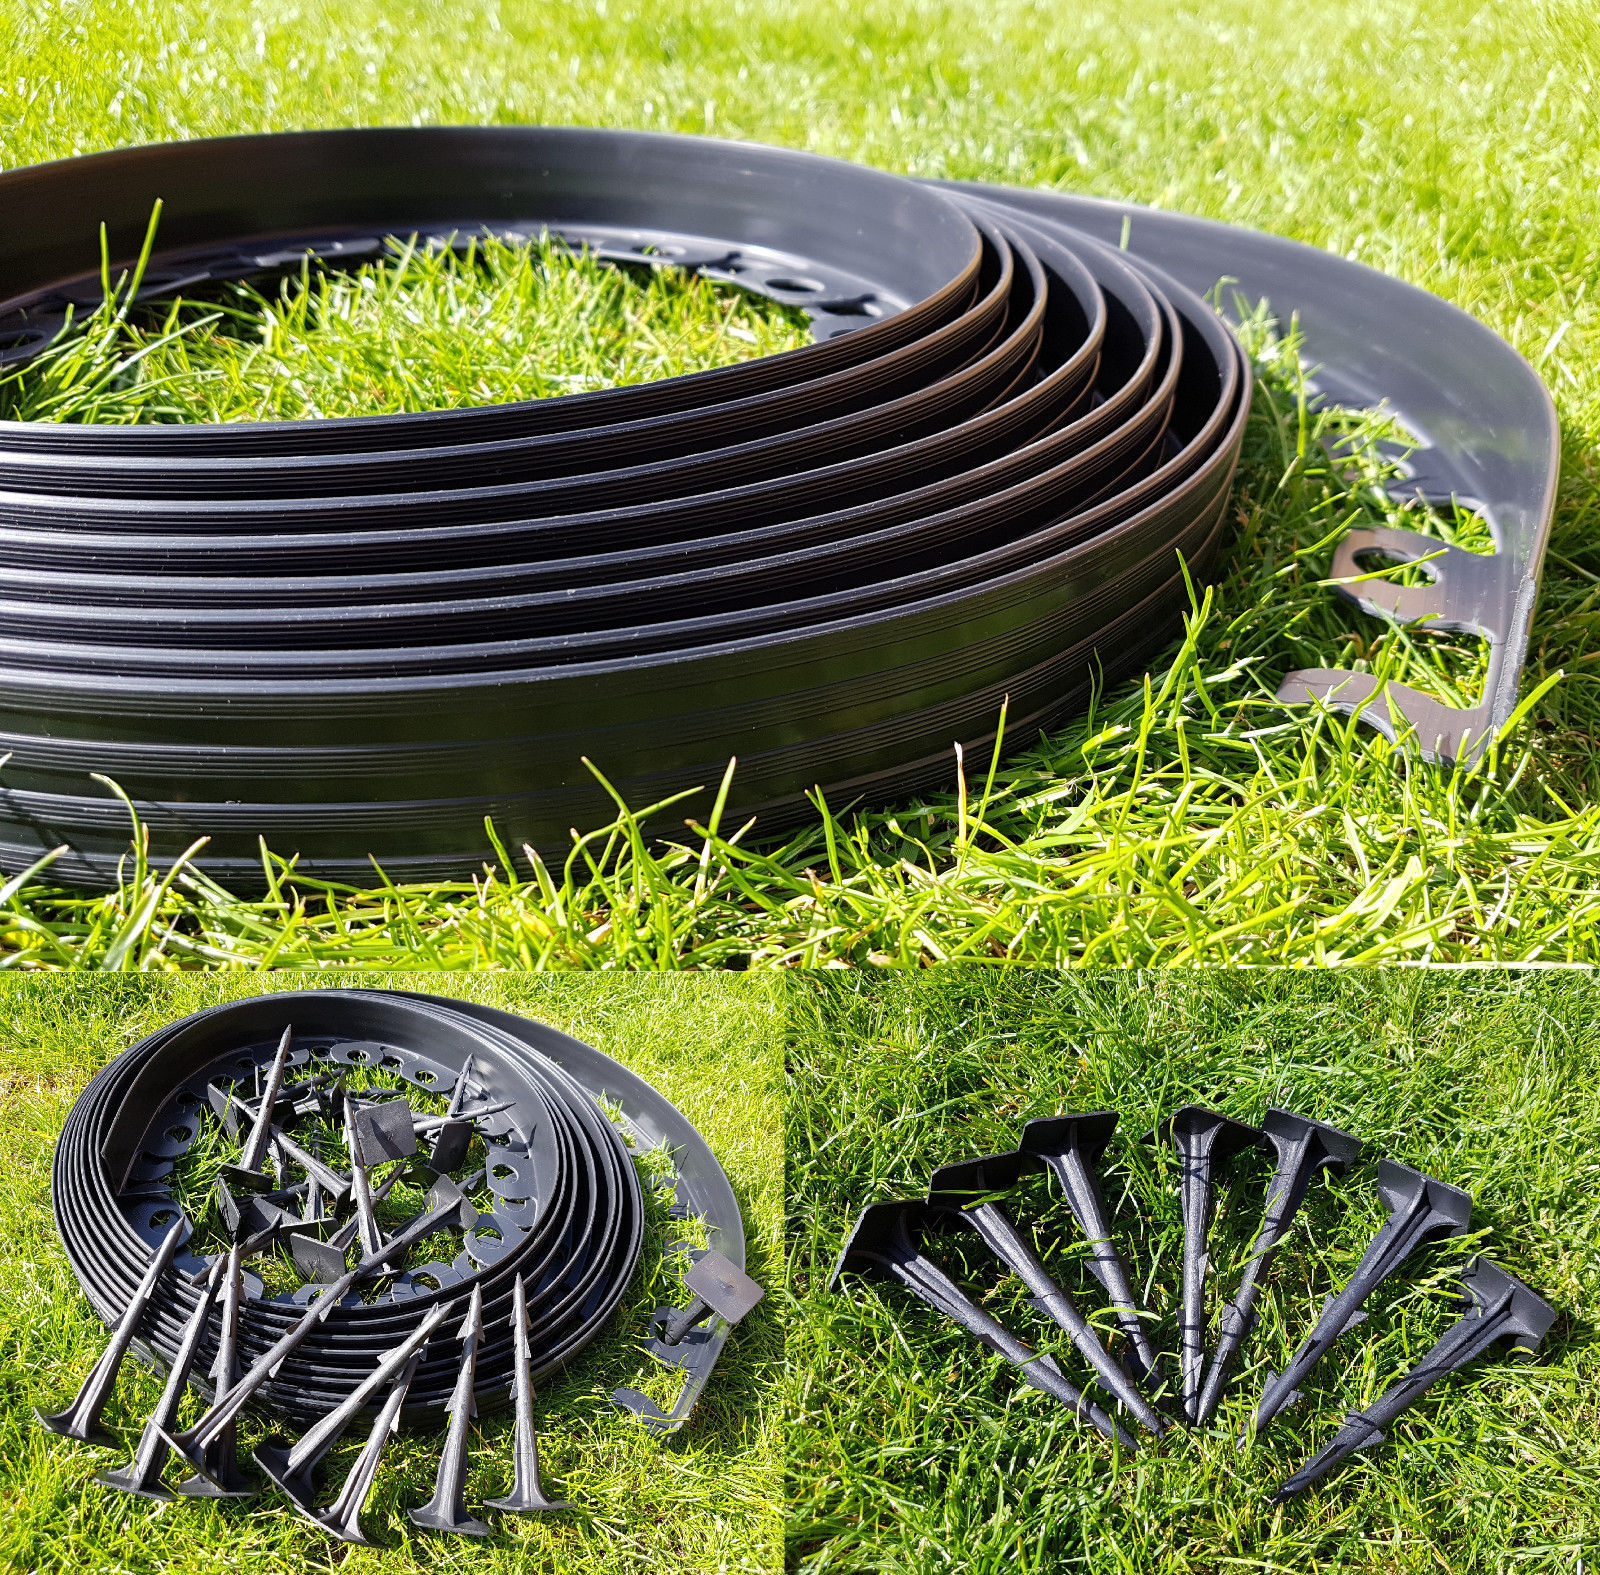 pvc plastic grass garden edging 10m 50 strong pegs versatile bordering for garden edge - Plastic Garden Edging